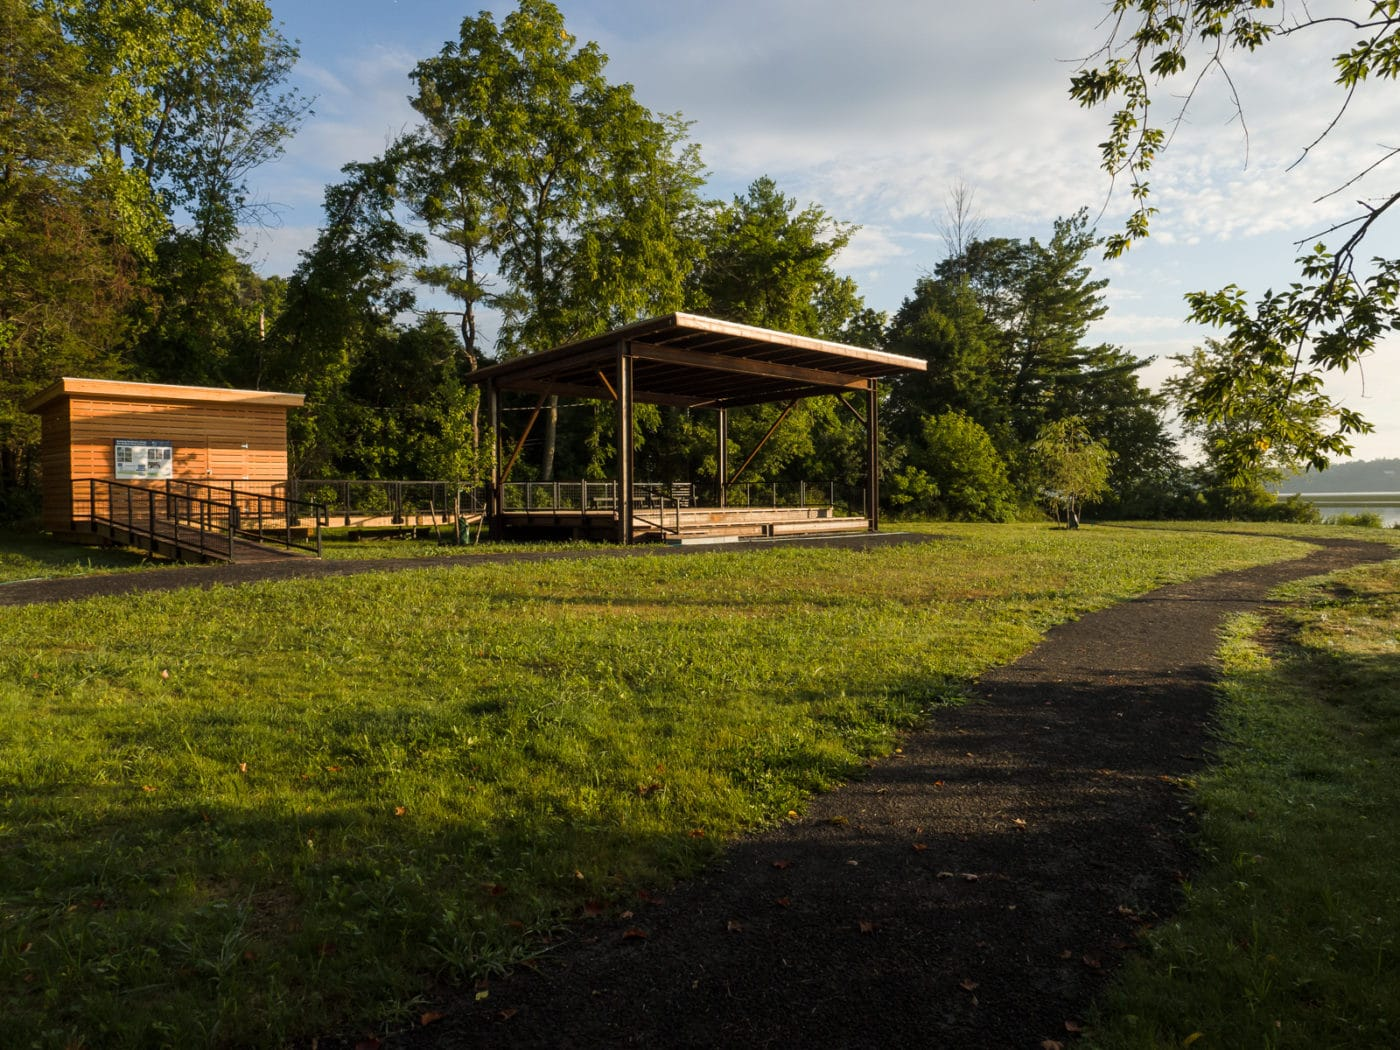 Pavilion at Esopus Meadows Preserve